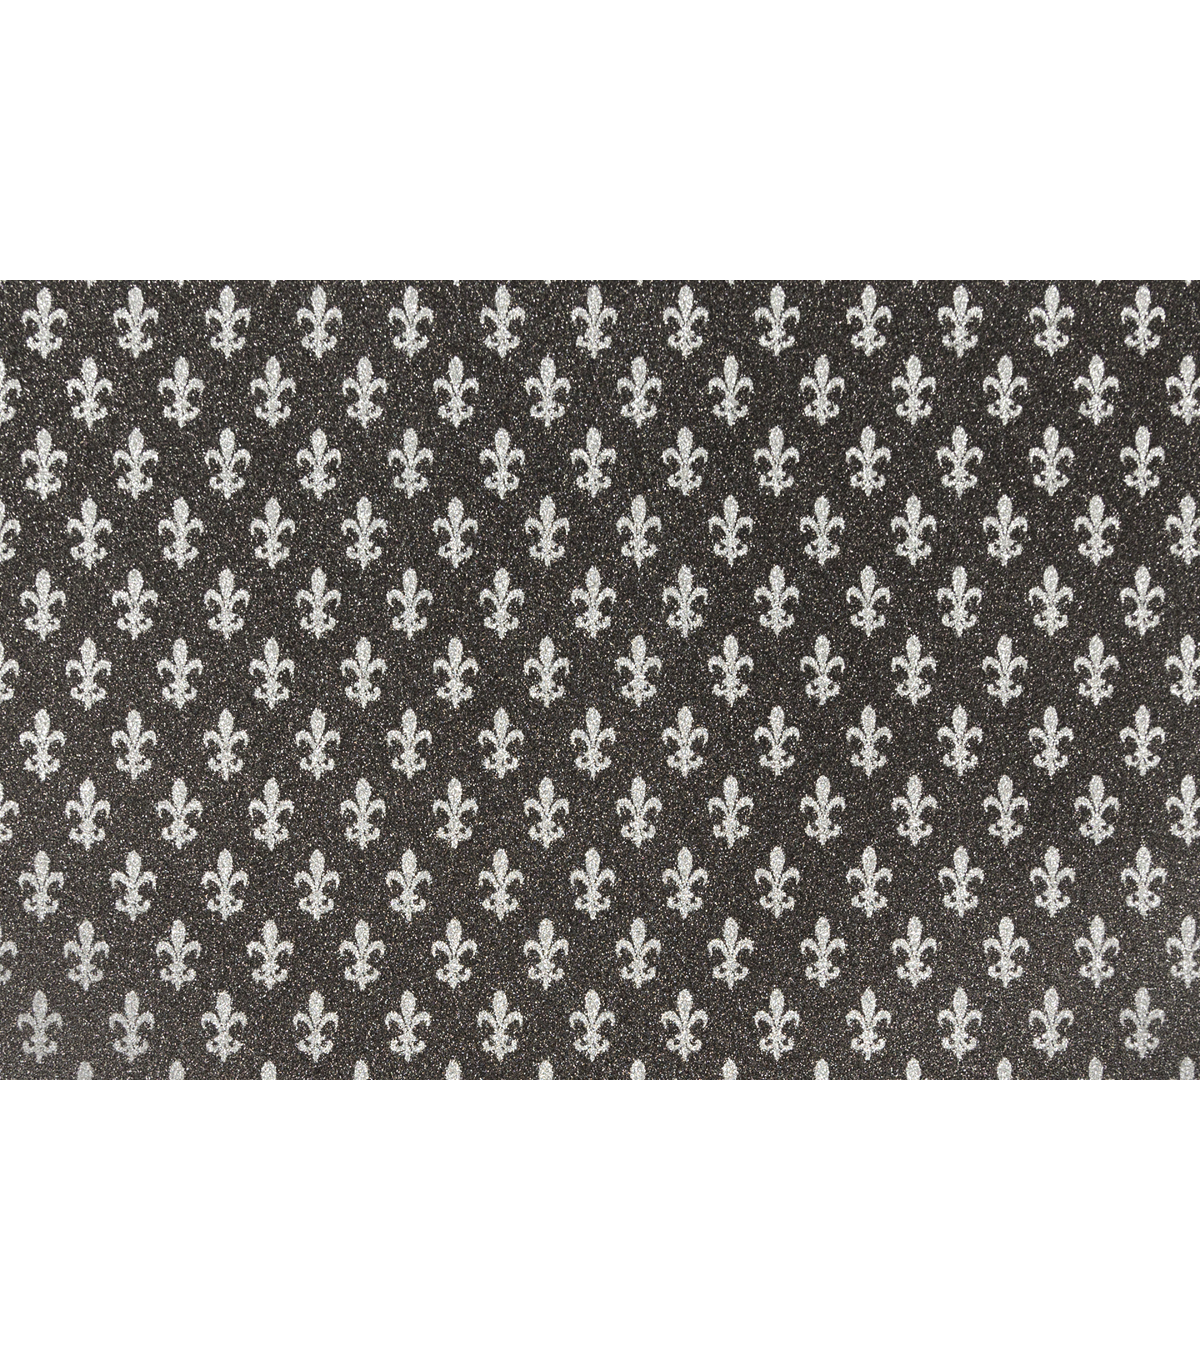 Cricut 10 Pack 12\u0027\u0027x12\u0027\u0027 Smooth Glitter Papers-Black & Silver